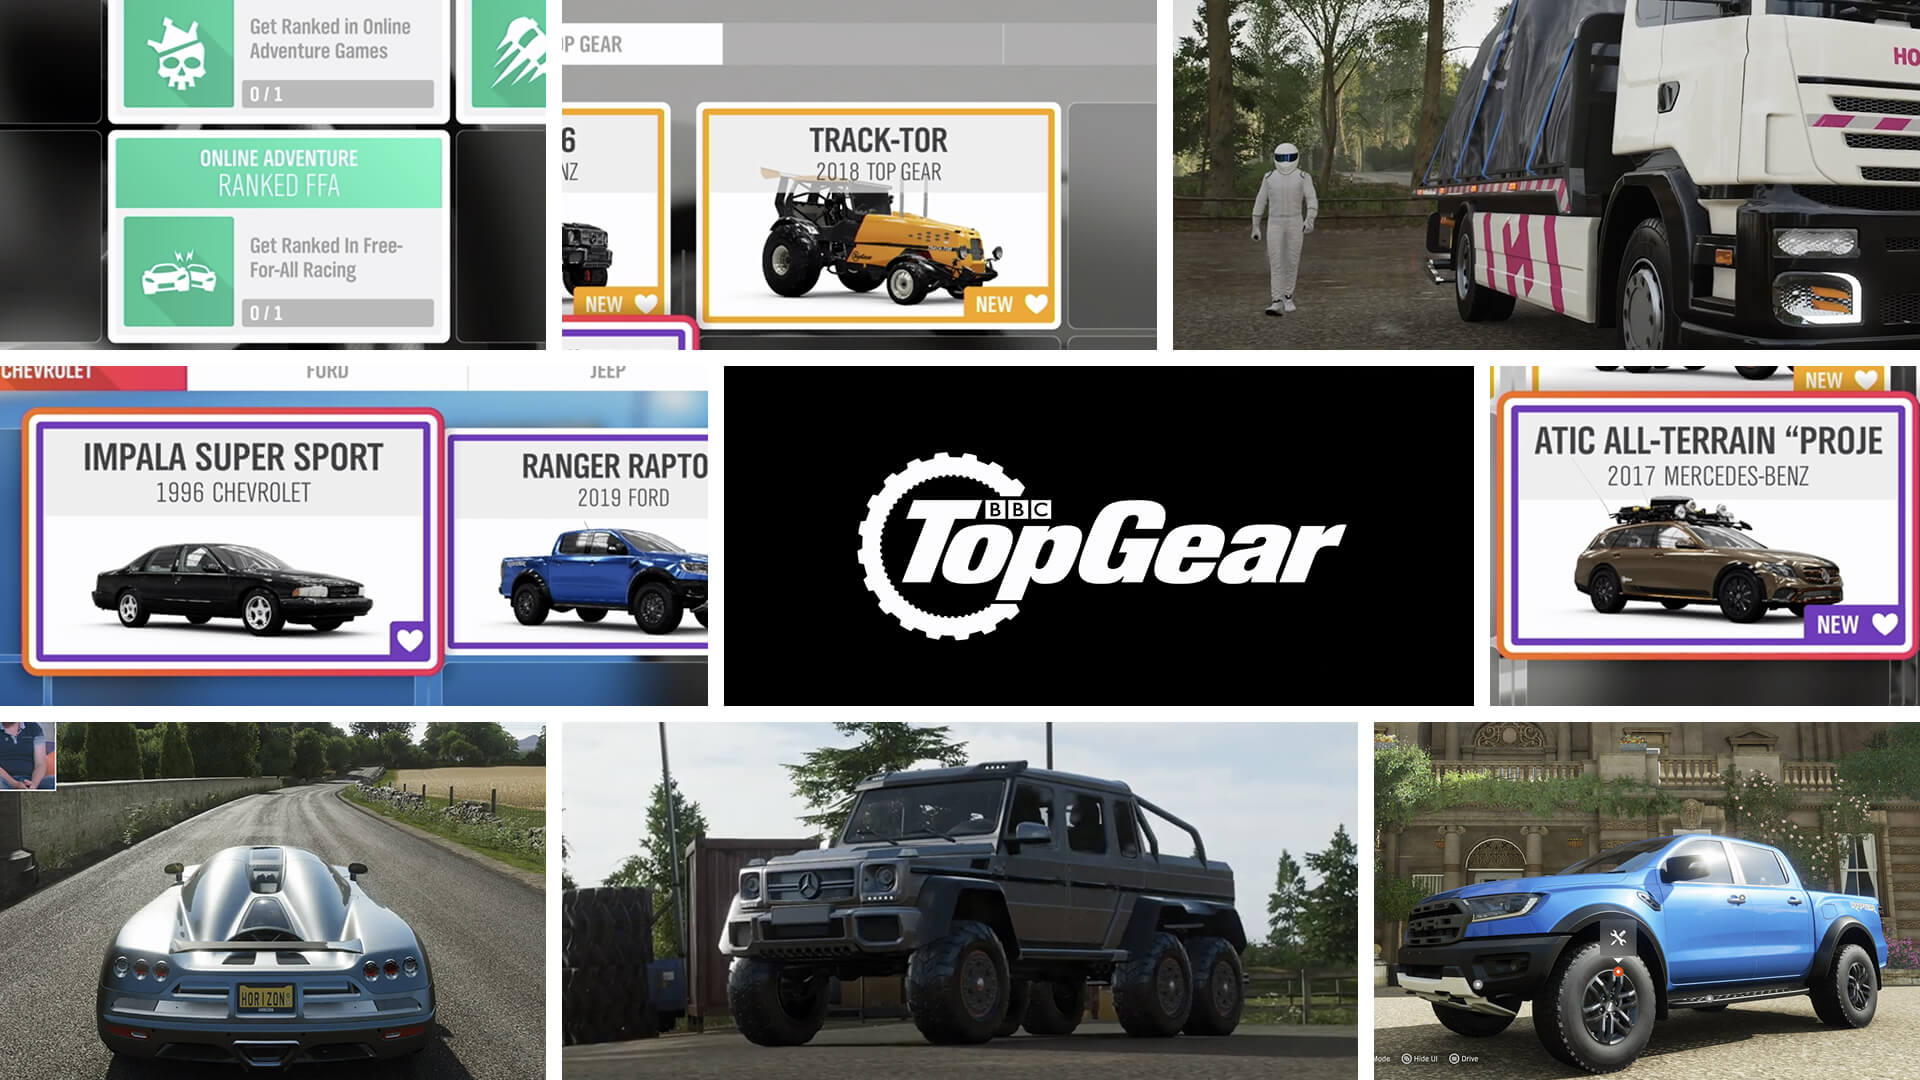 Forza Horizon 4 Series 11 Preview: Top Gear, Merc G63 6x6 and More